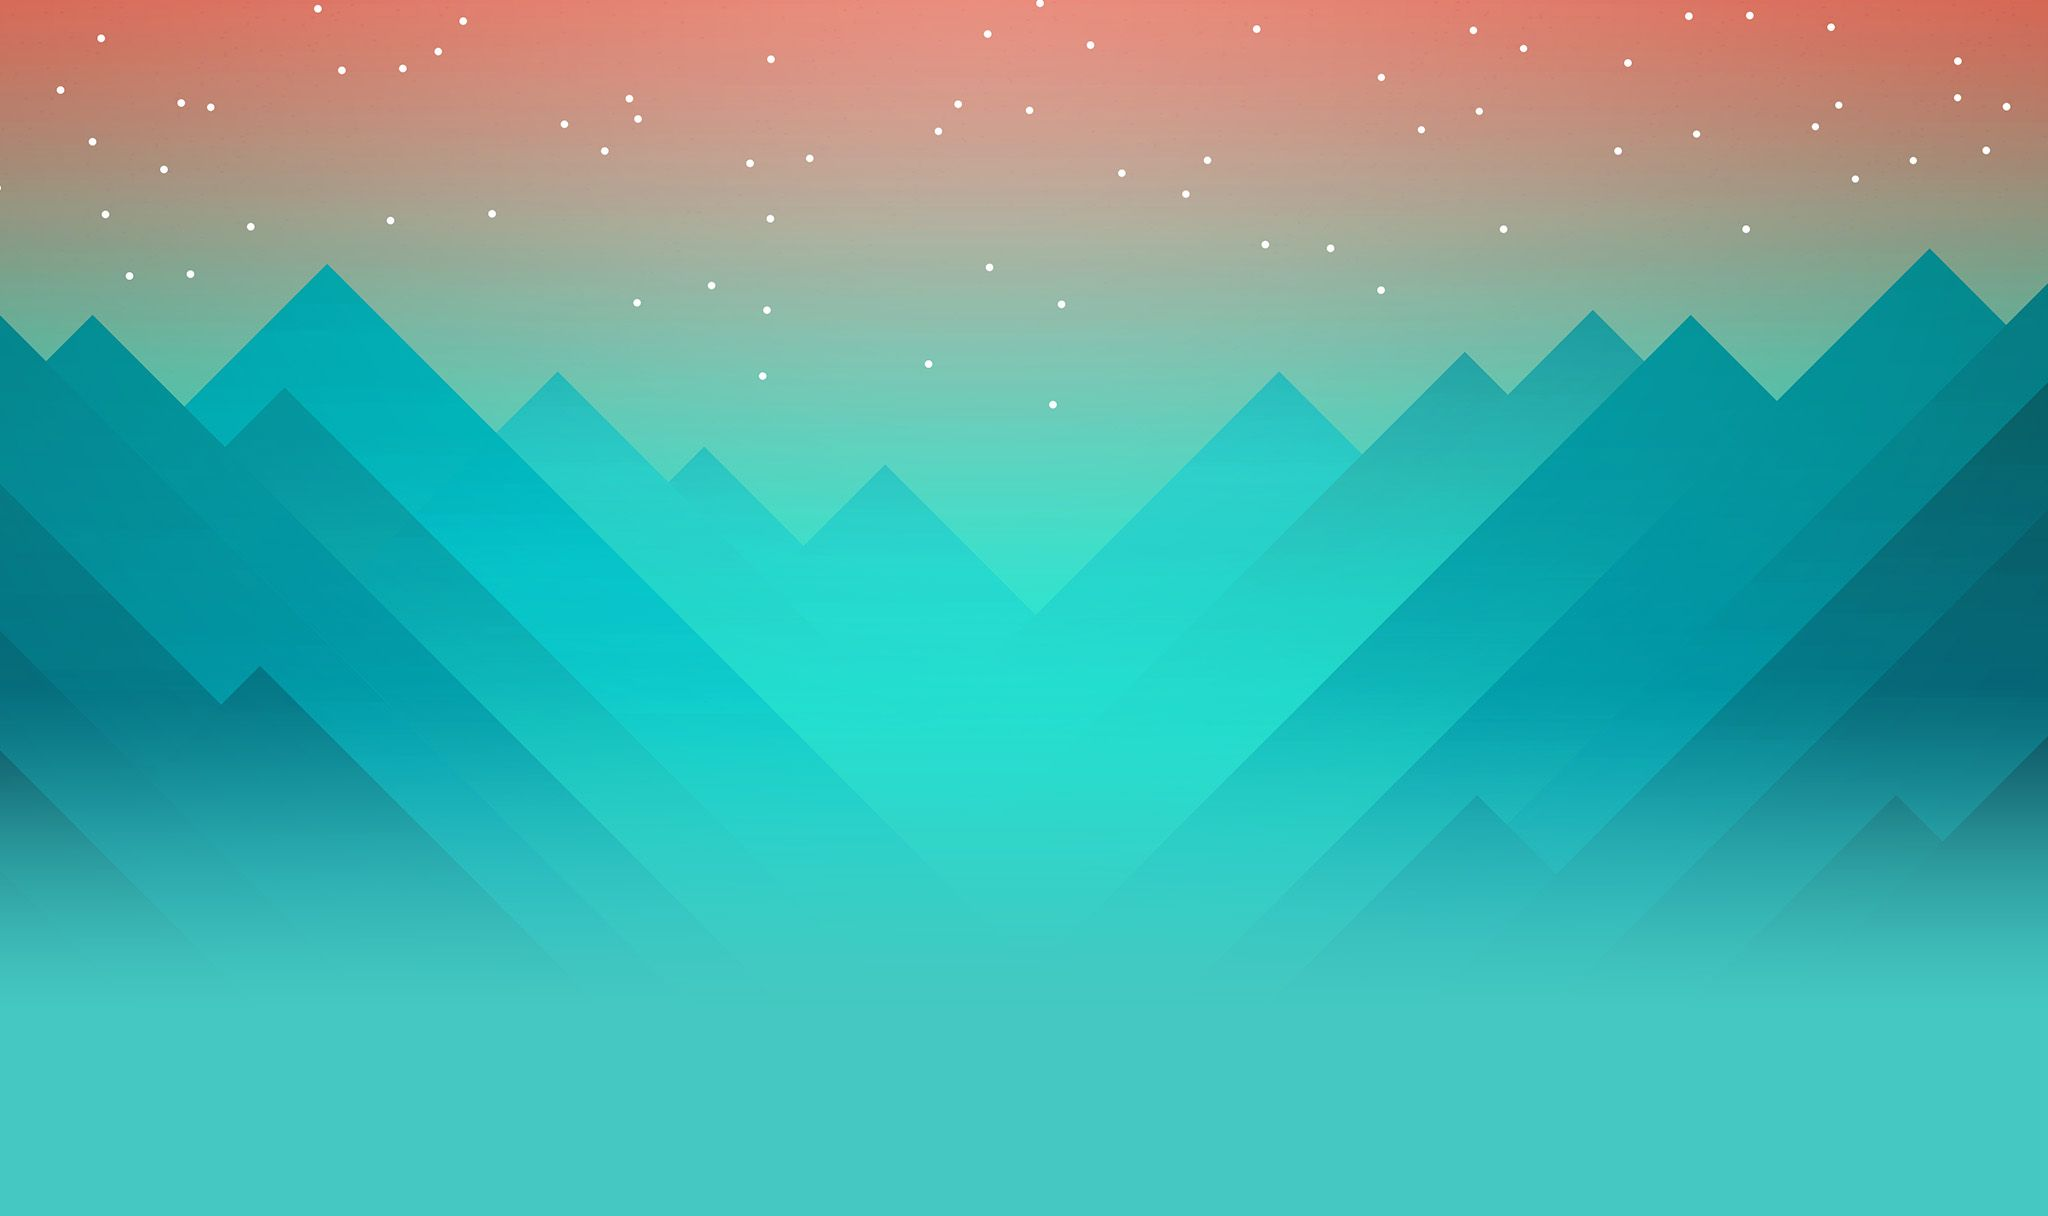 Monument Valley An Ios And Android Game By Ustwo Monument Valley Game Valley Game Wallpaper